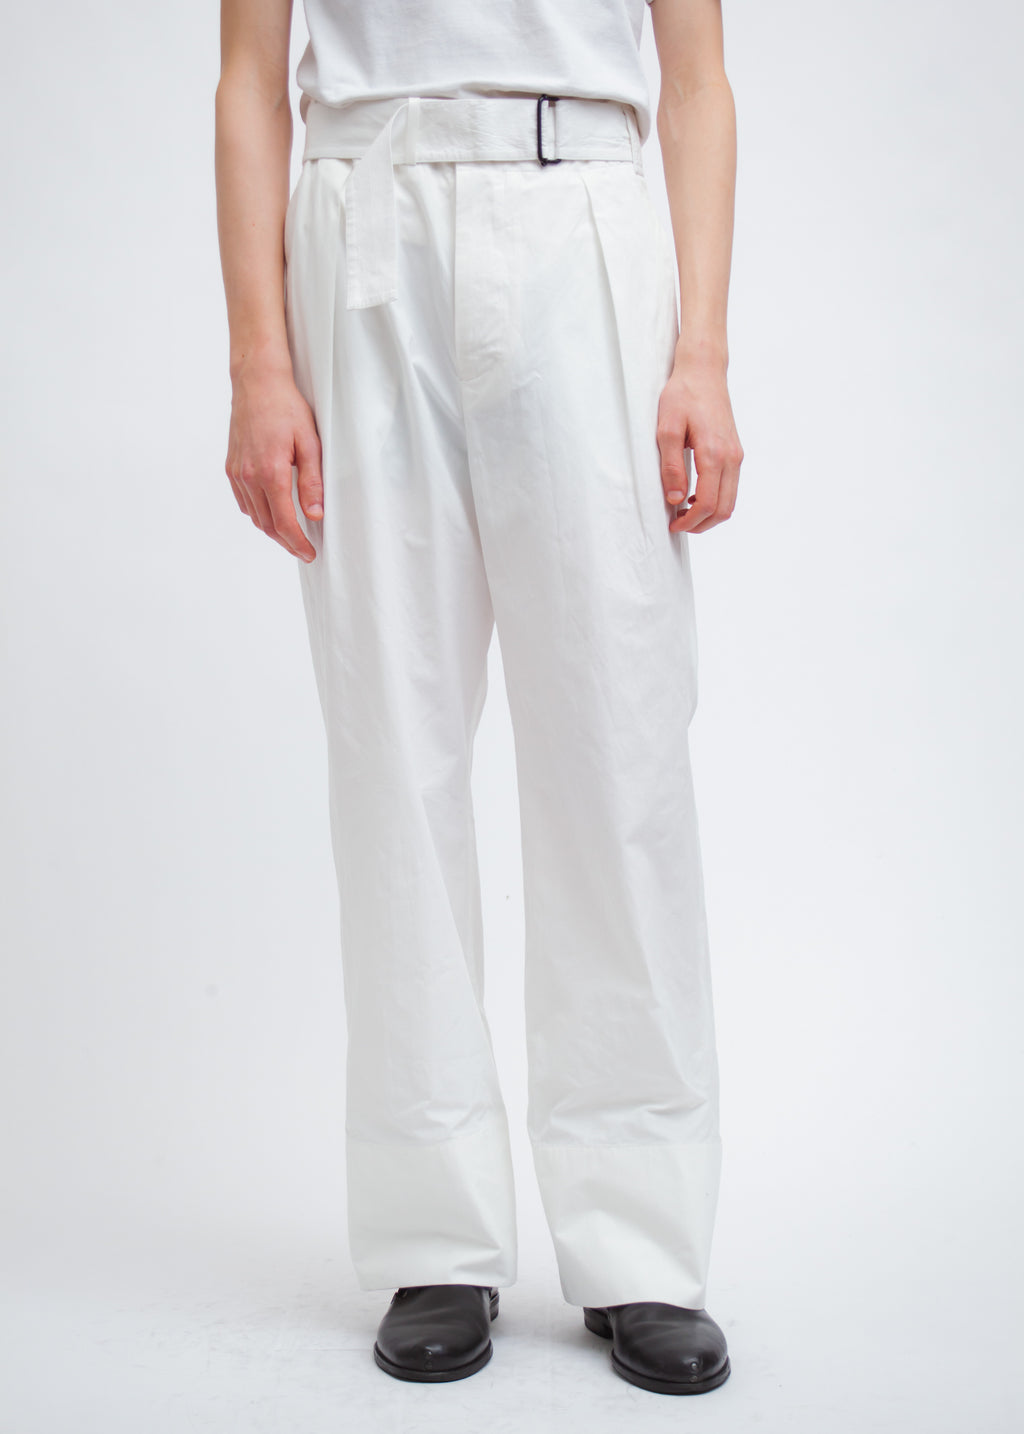 Omar Afridi Belted Dust Trousers (White Mid Weight Cotton)